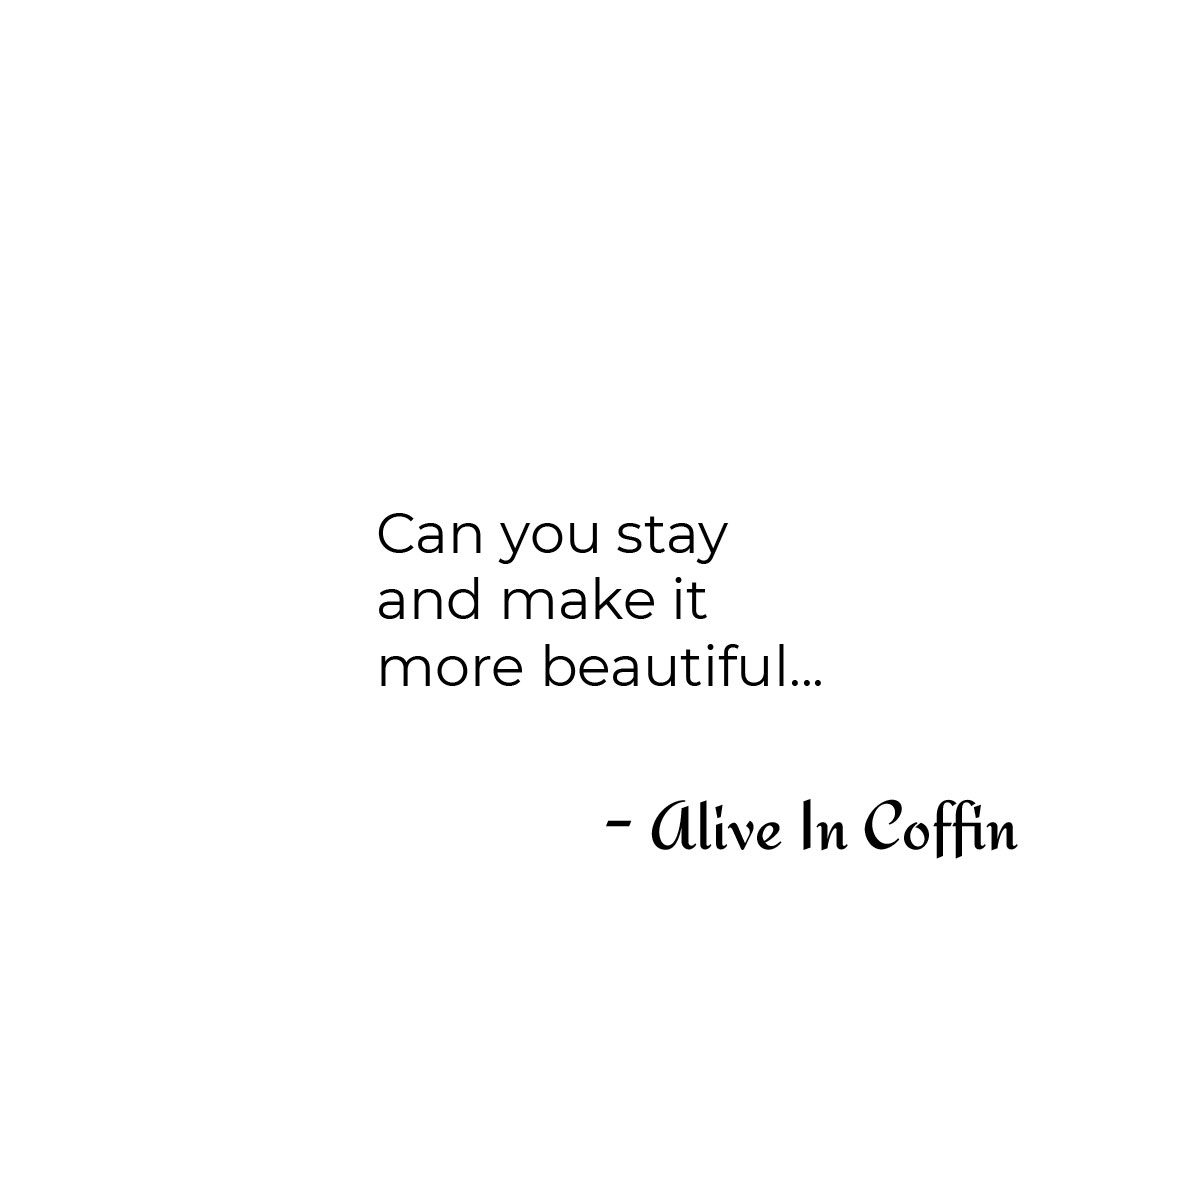 A question to make the relationship more beautiful.